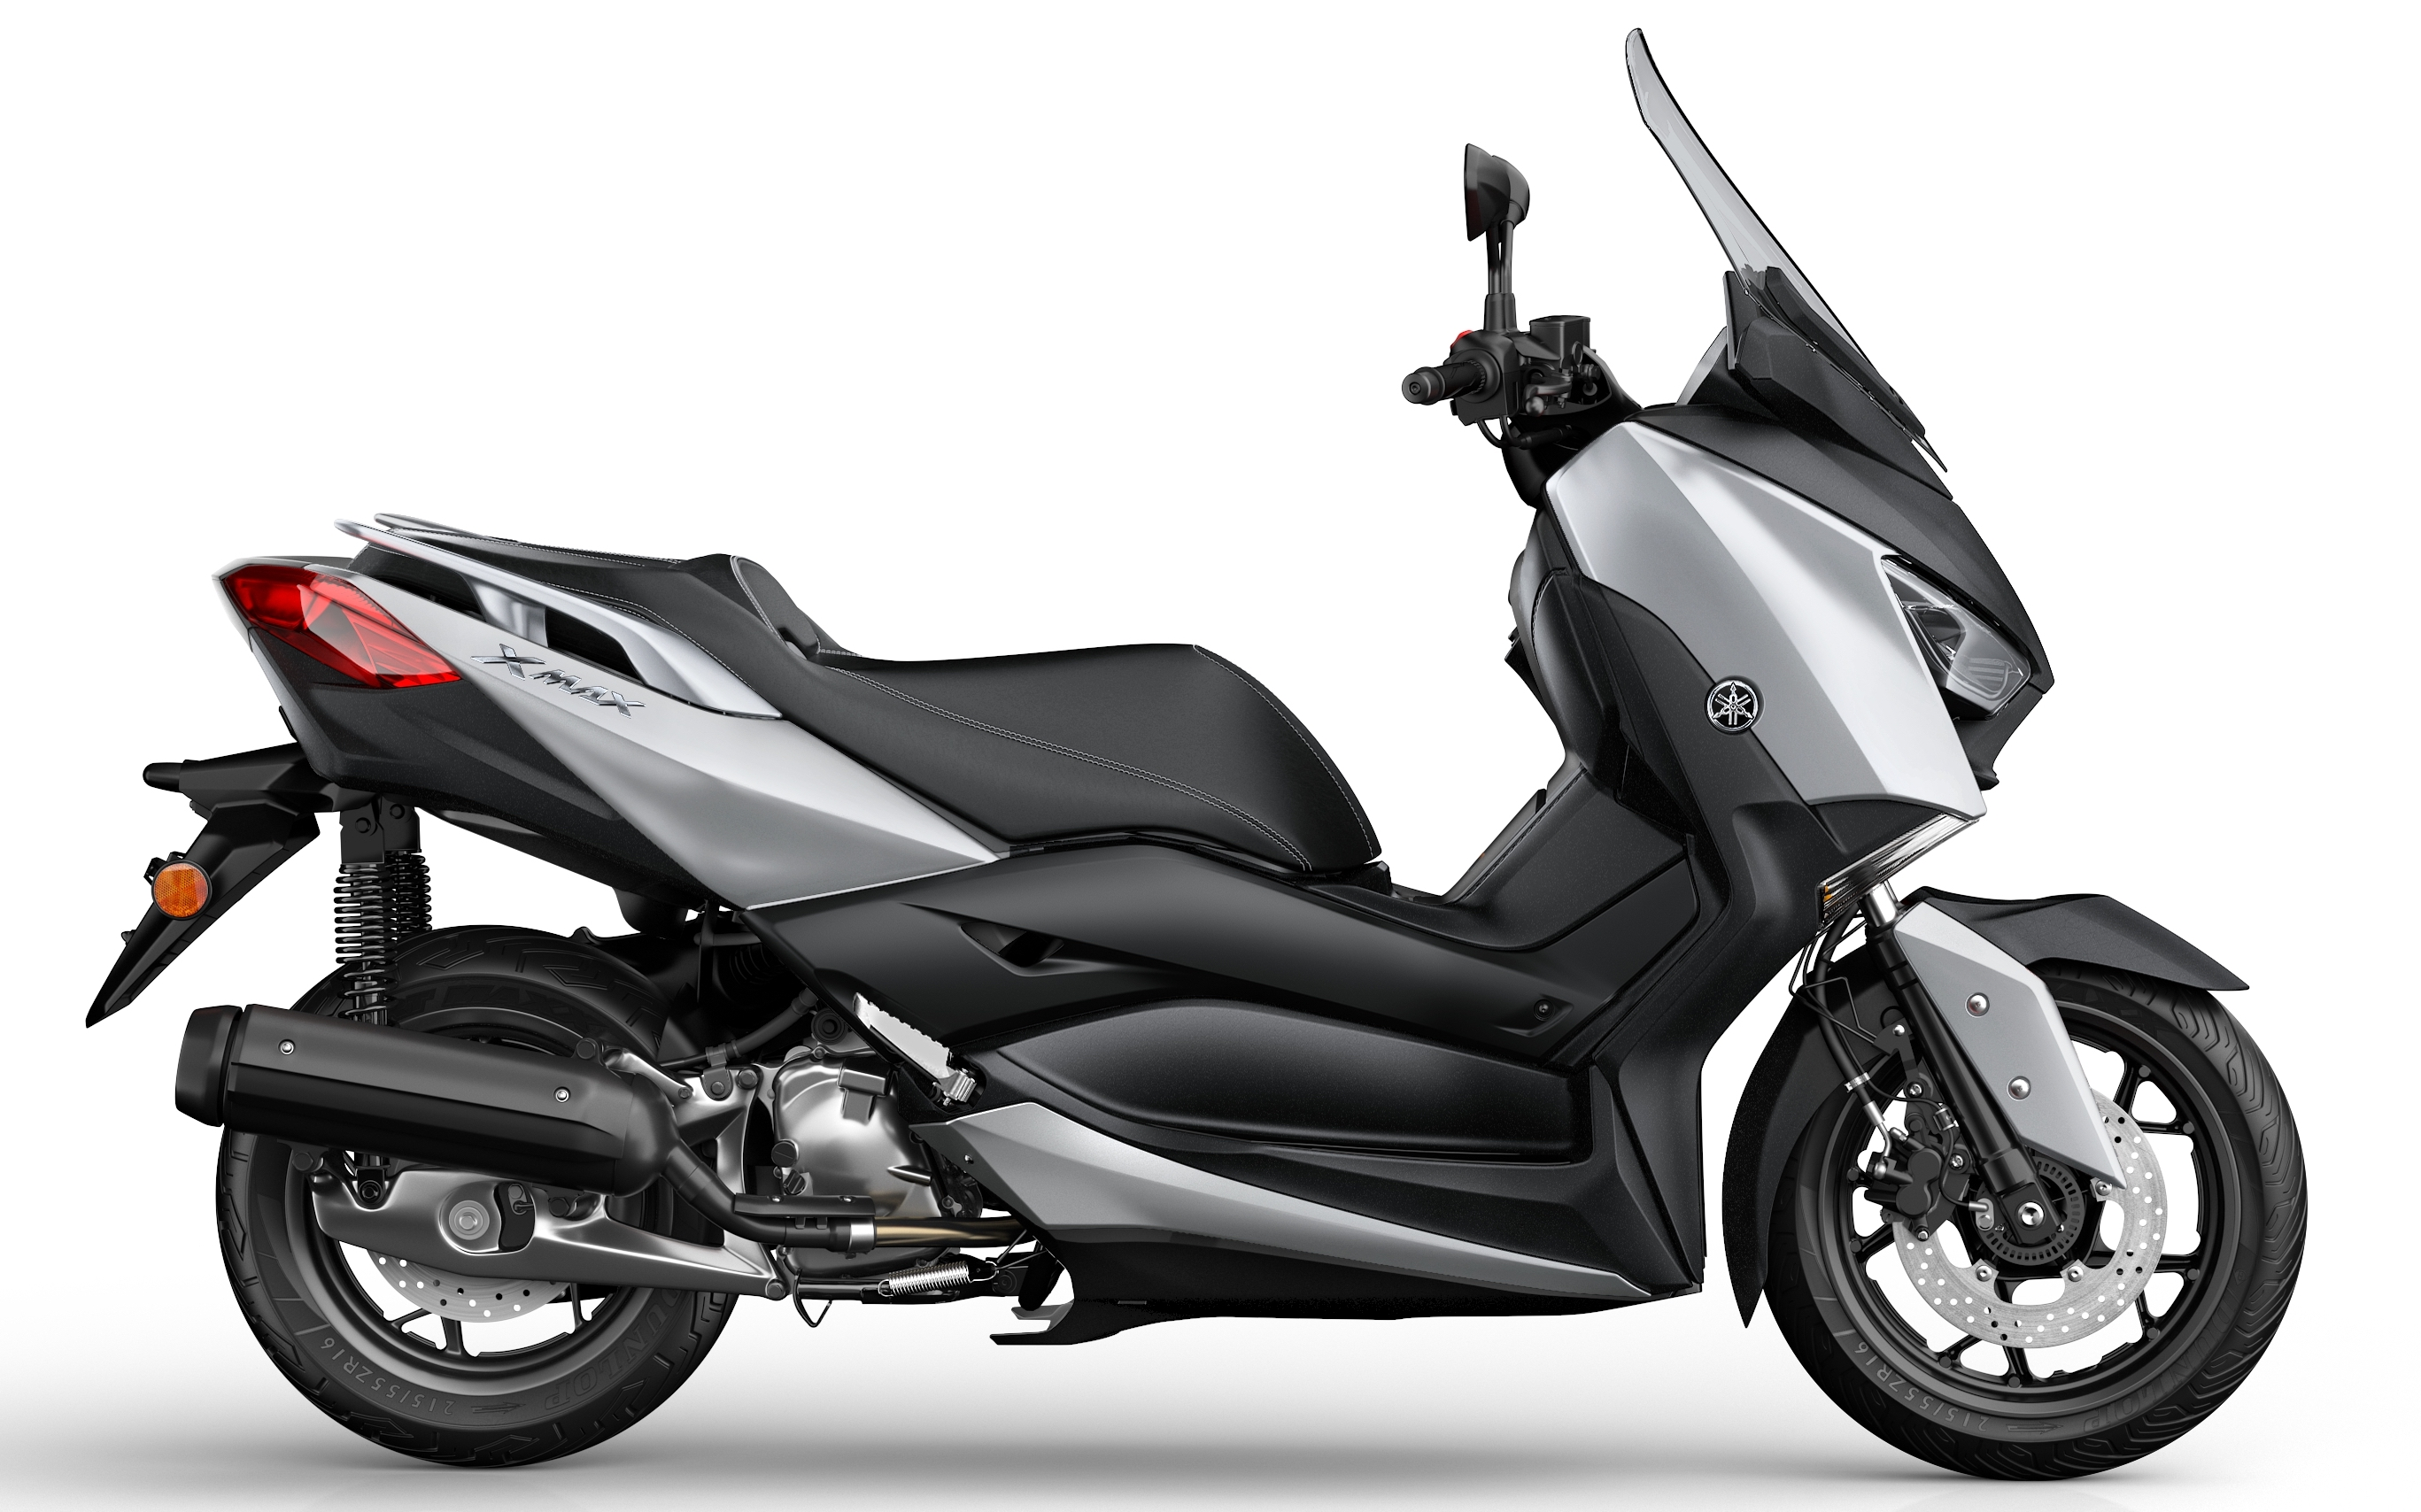 2018 yamaha x max 125 scooter released in europe paul tan image 709932. Black Bedroom Furniture Sets. Home Design Ideas